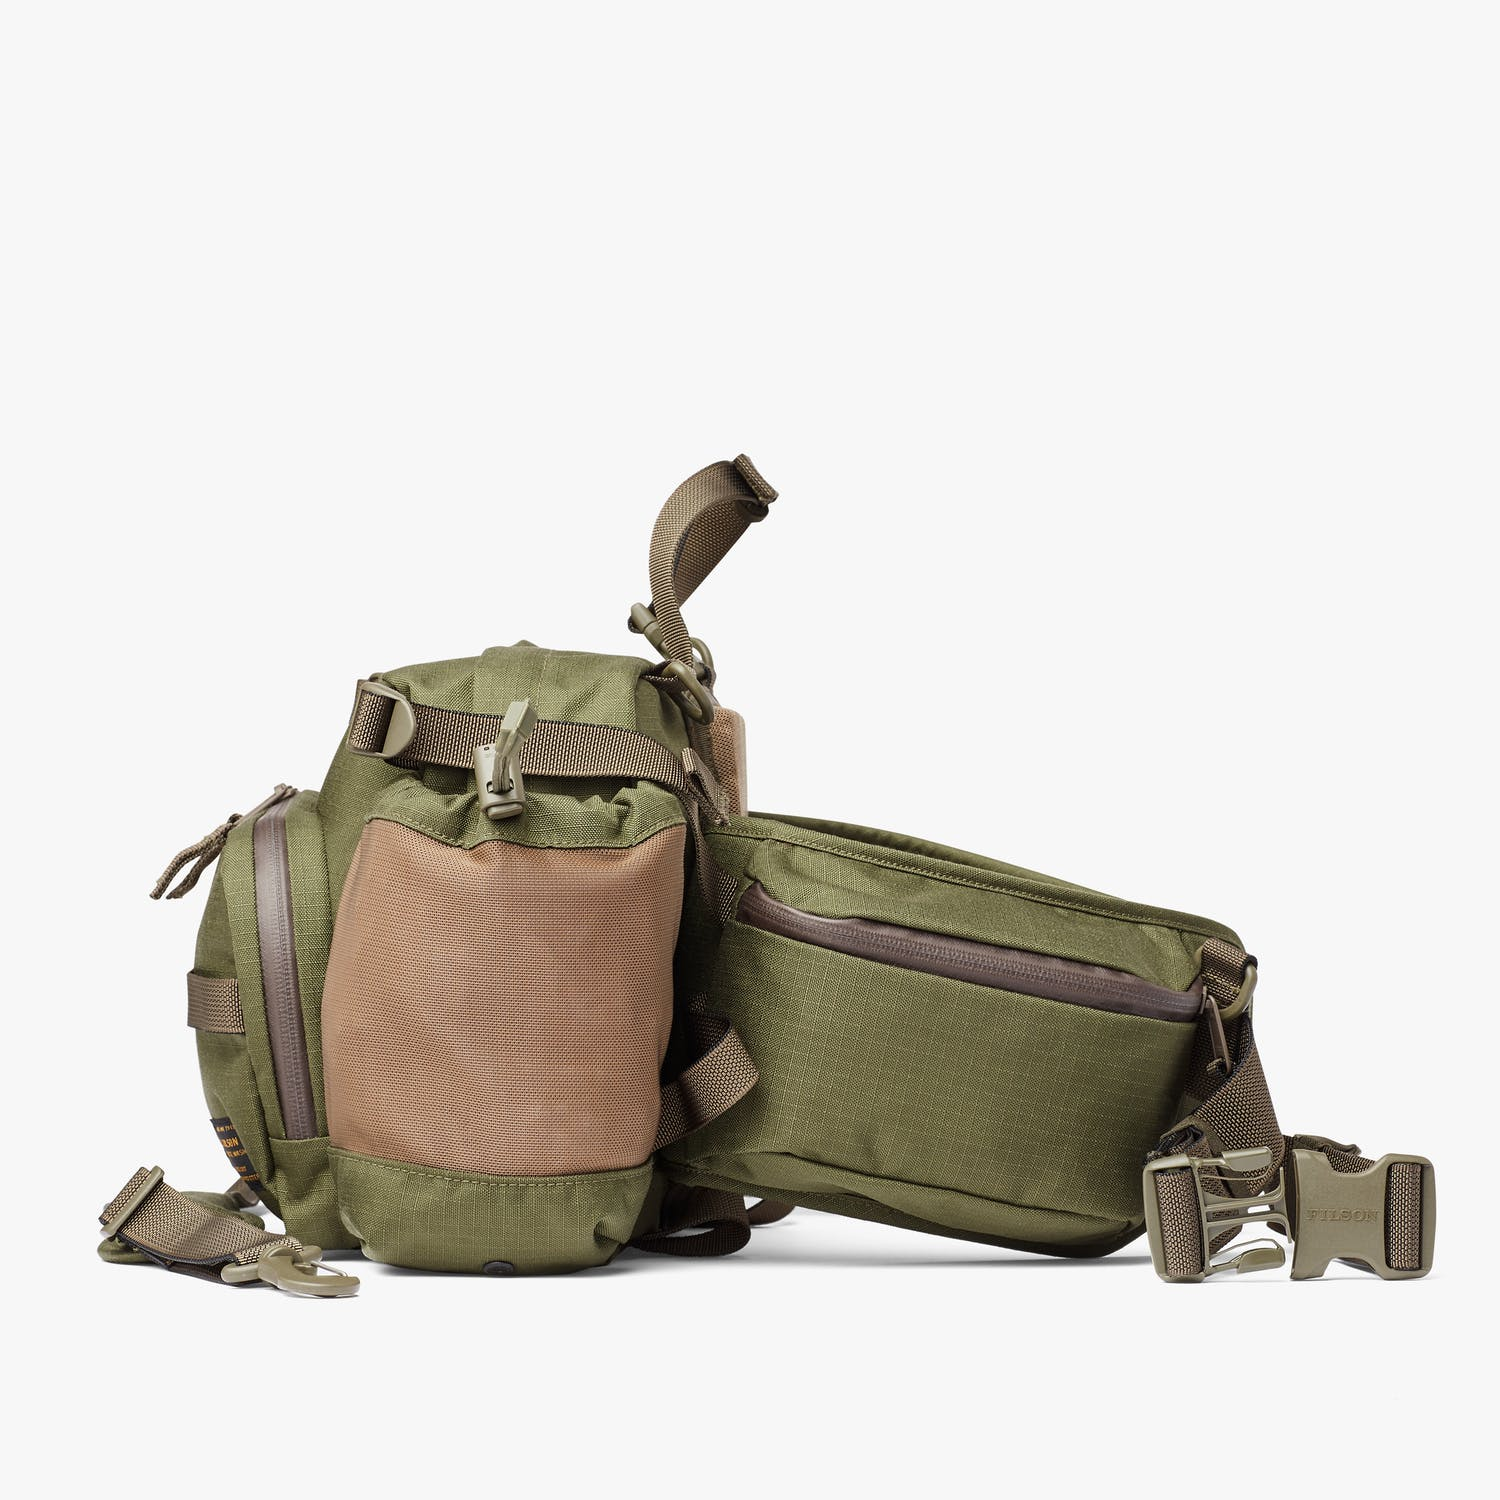 Ripstop Nylon Waist Pack - Surplus Green